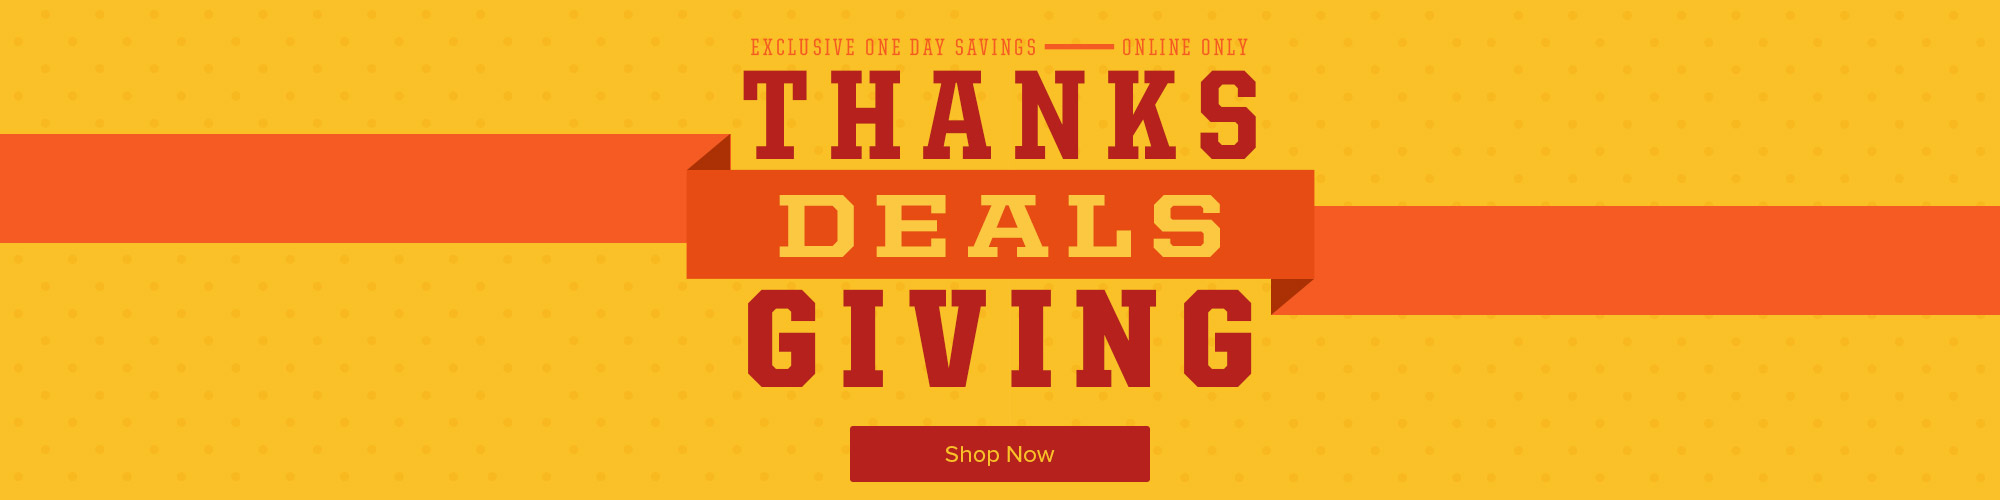 One Day Only Thanksgiving Day Deals